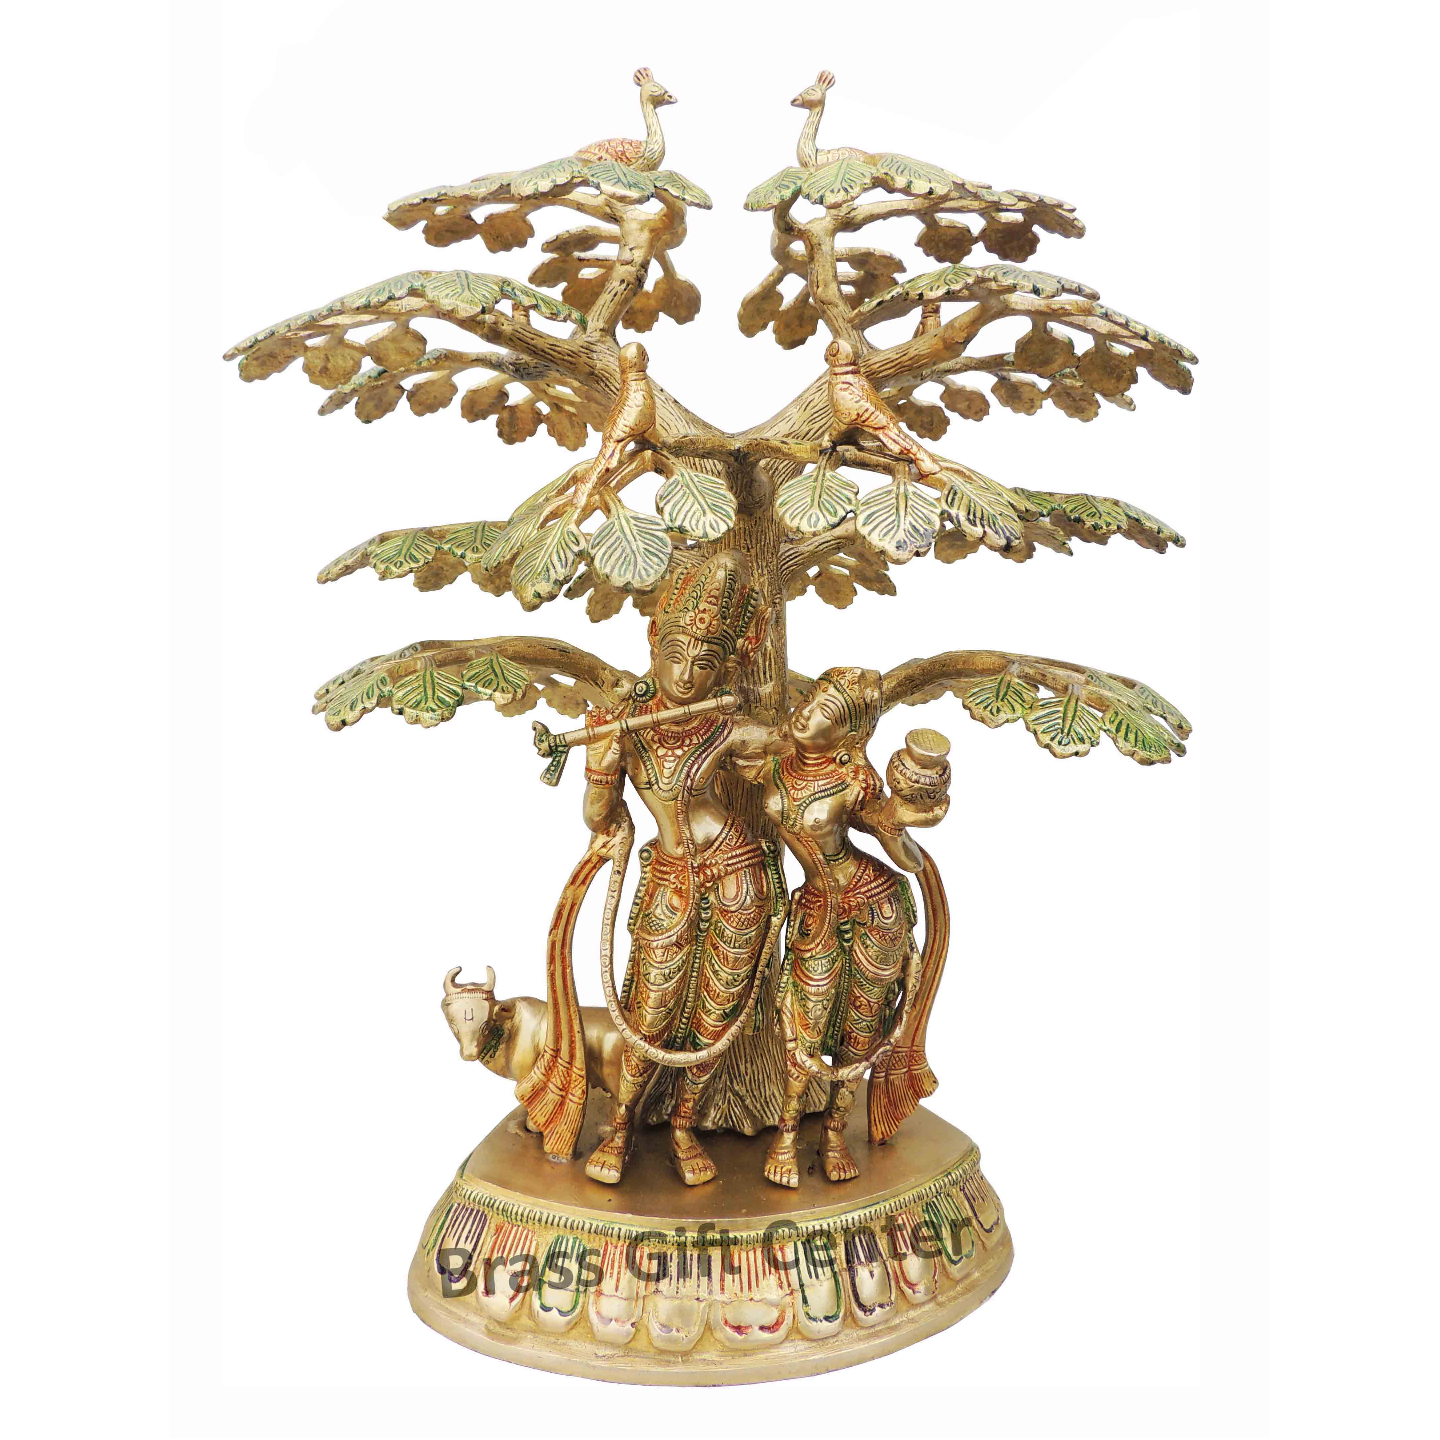 Brass Radha Krishna Staute Under Tree Idol Murti in Multicolour lacquer finish - 15.512.519.4 Inch  BS828 C